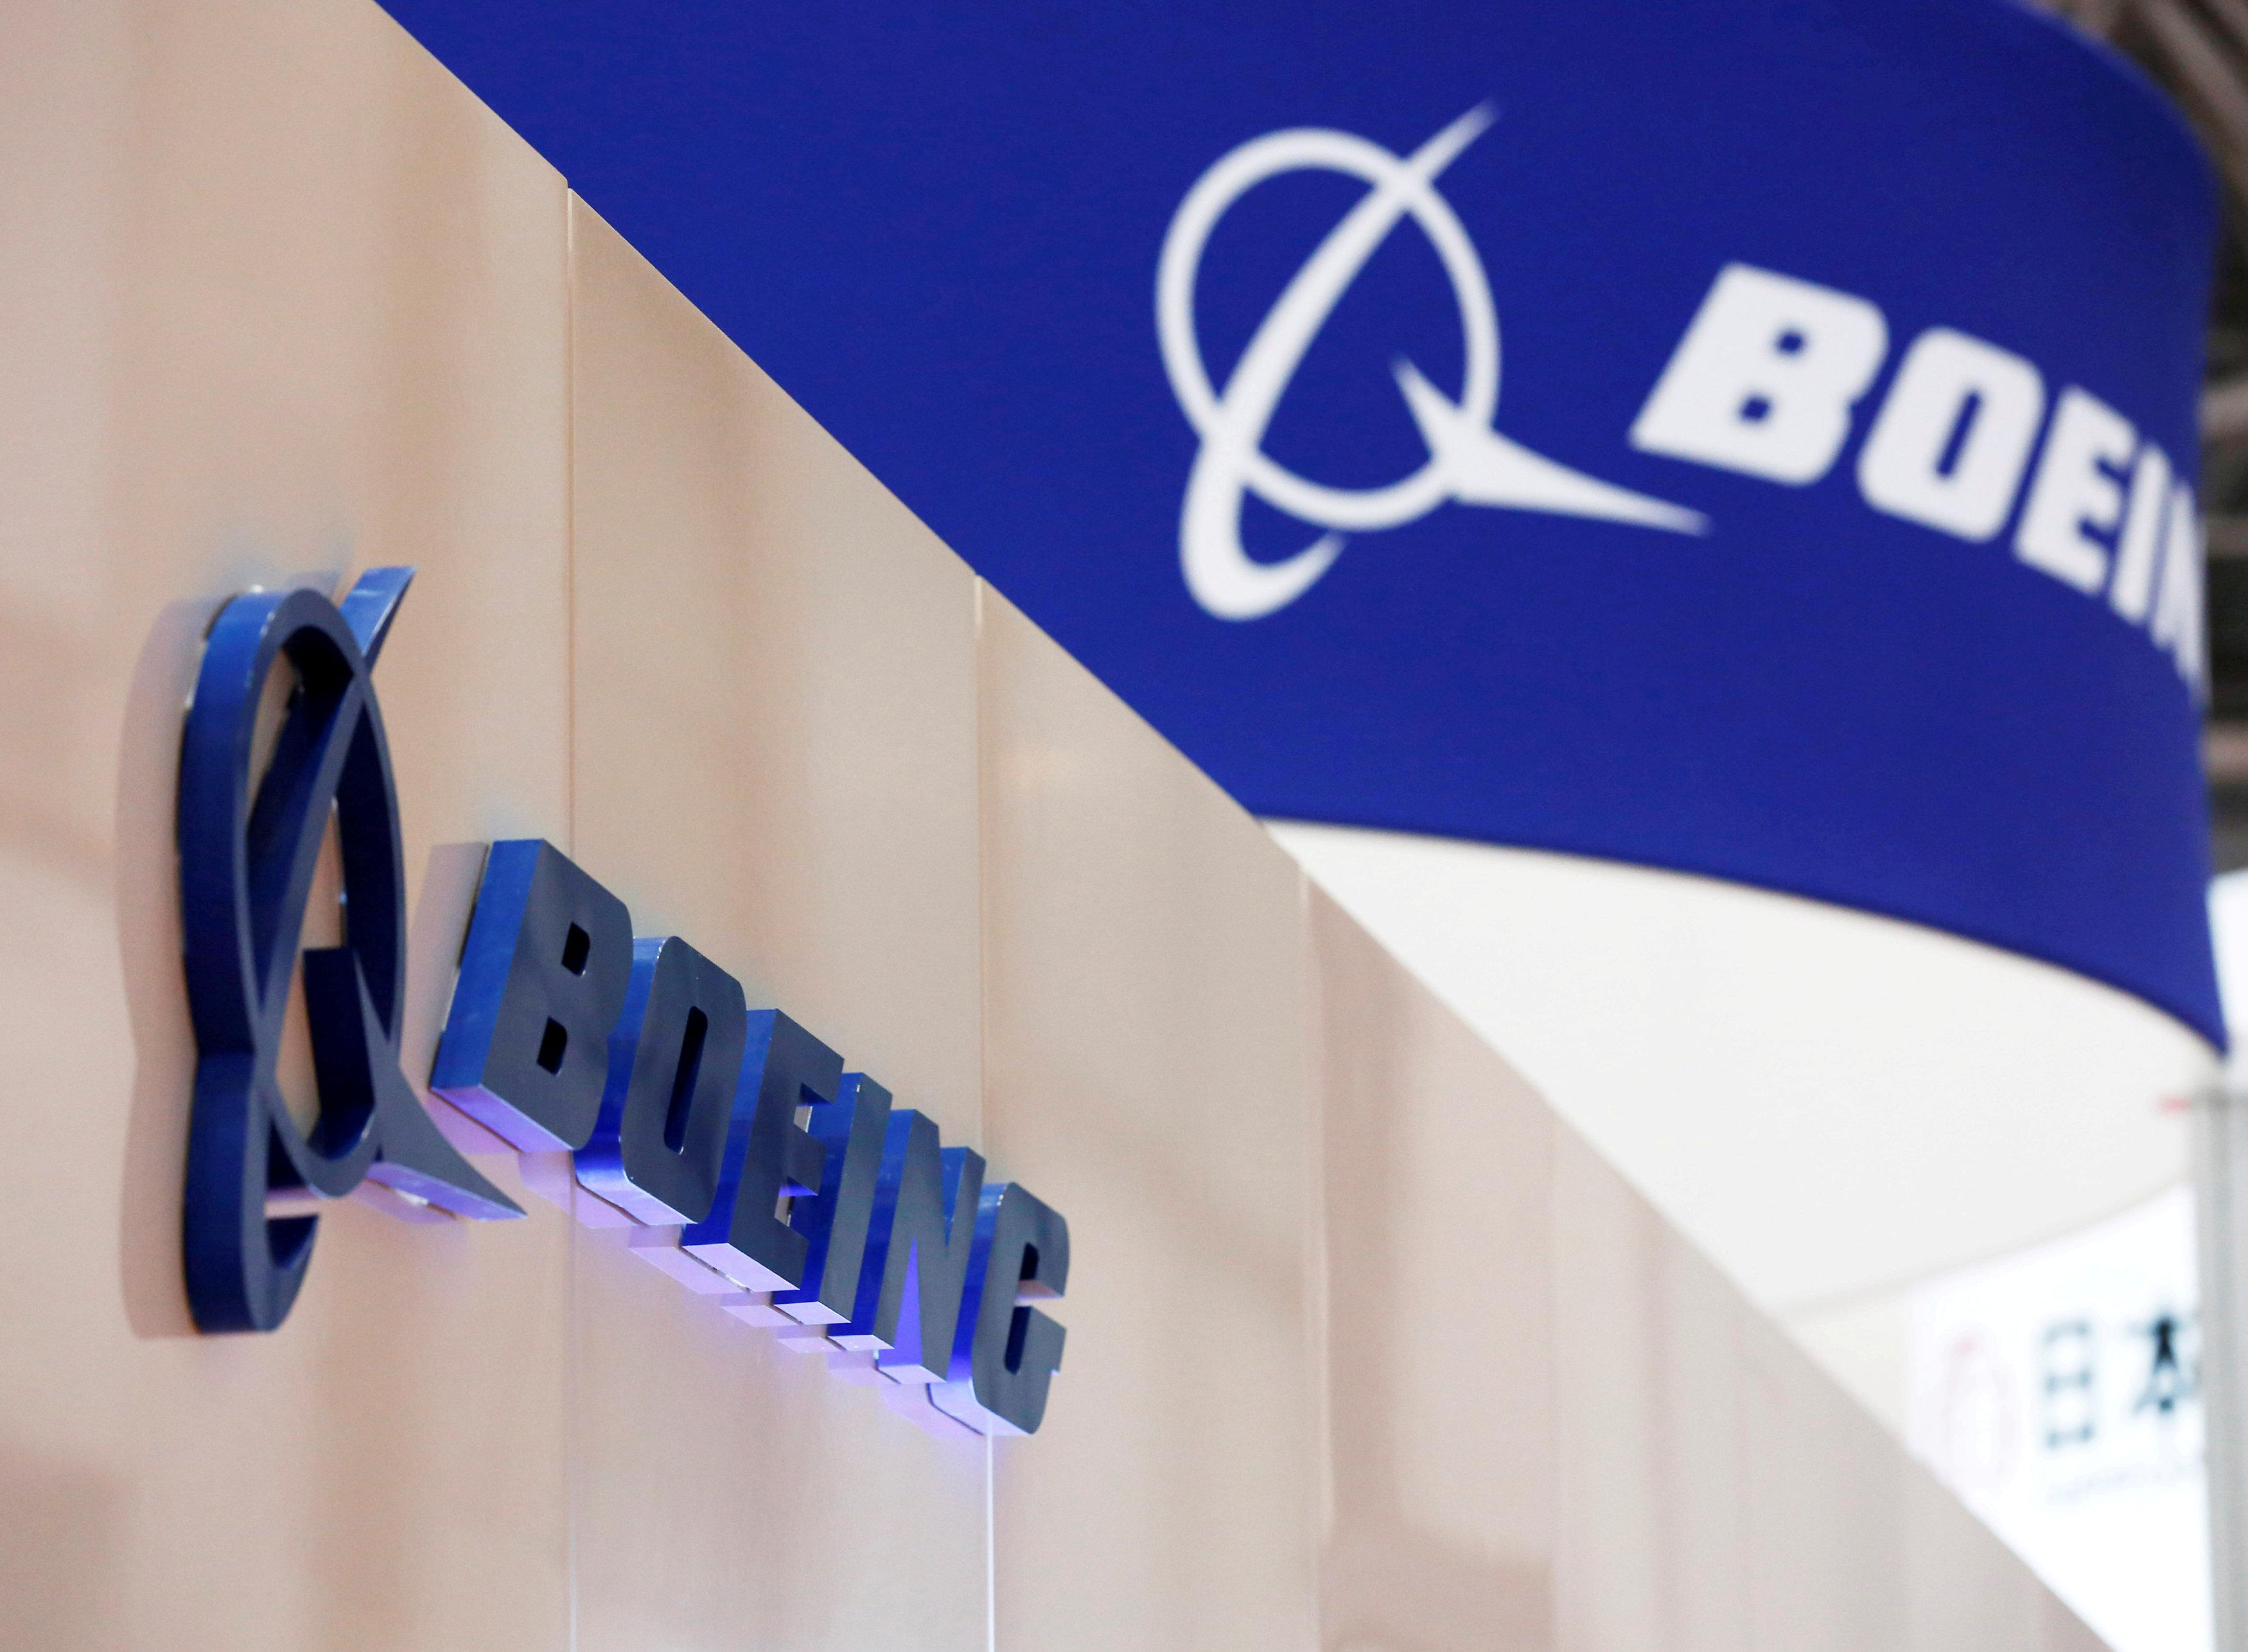 Boeing's logo is seen during the Japan Aerospace 2016 air show in Tokyo, Japan, October 12, 2016.   Kim Kyung-Hoon